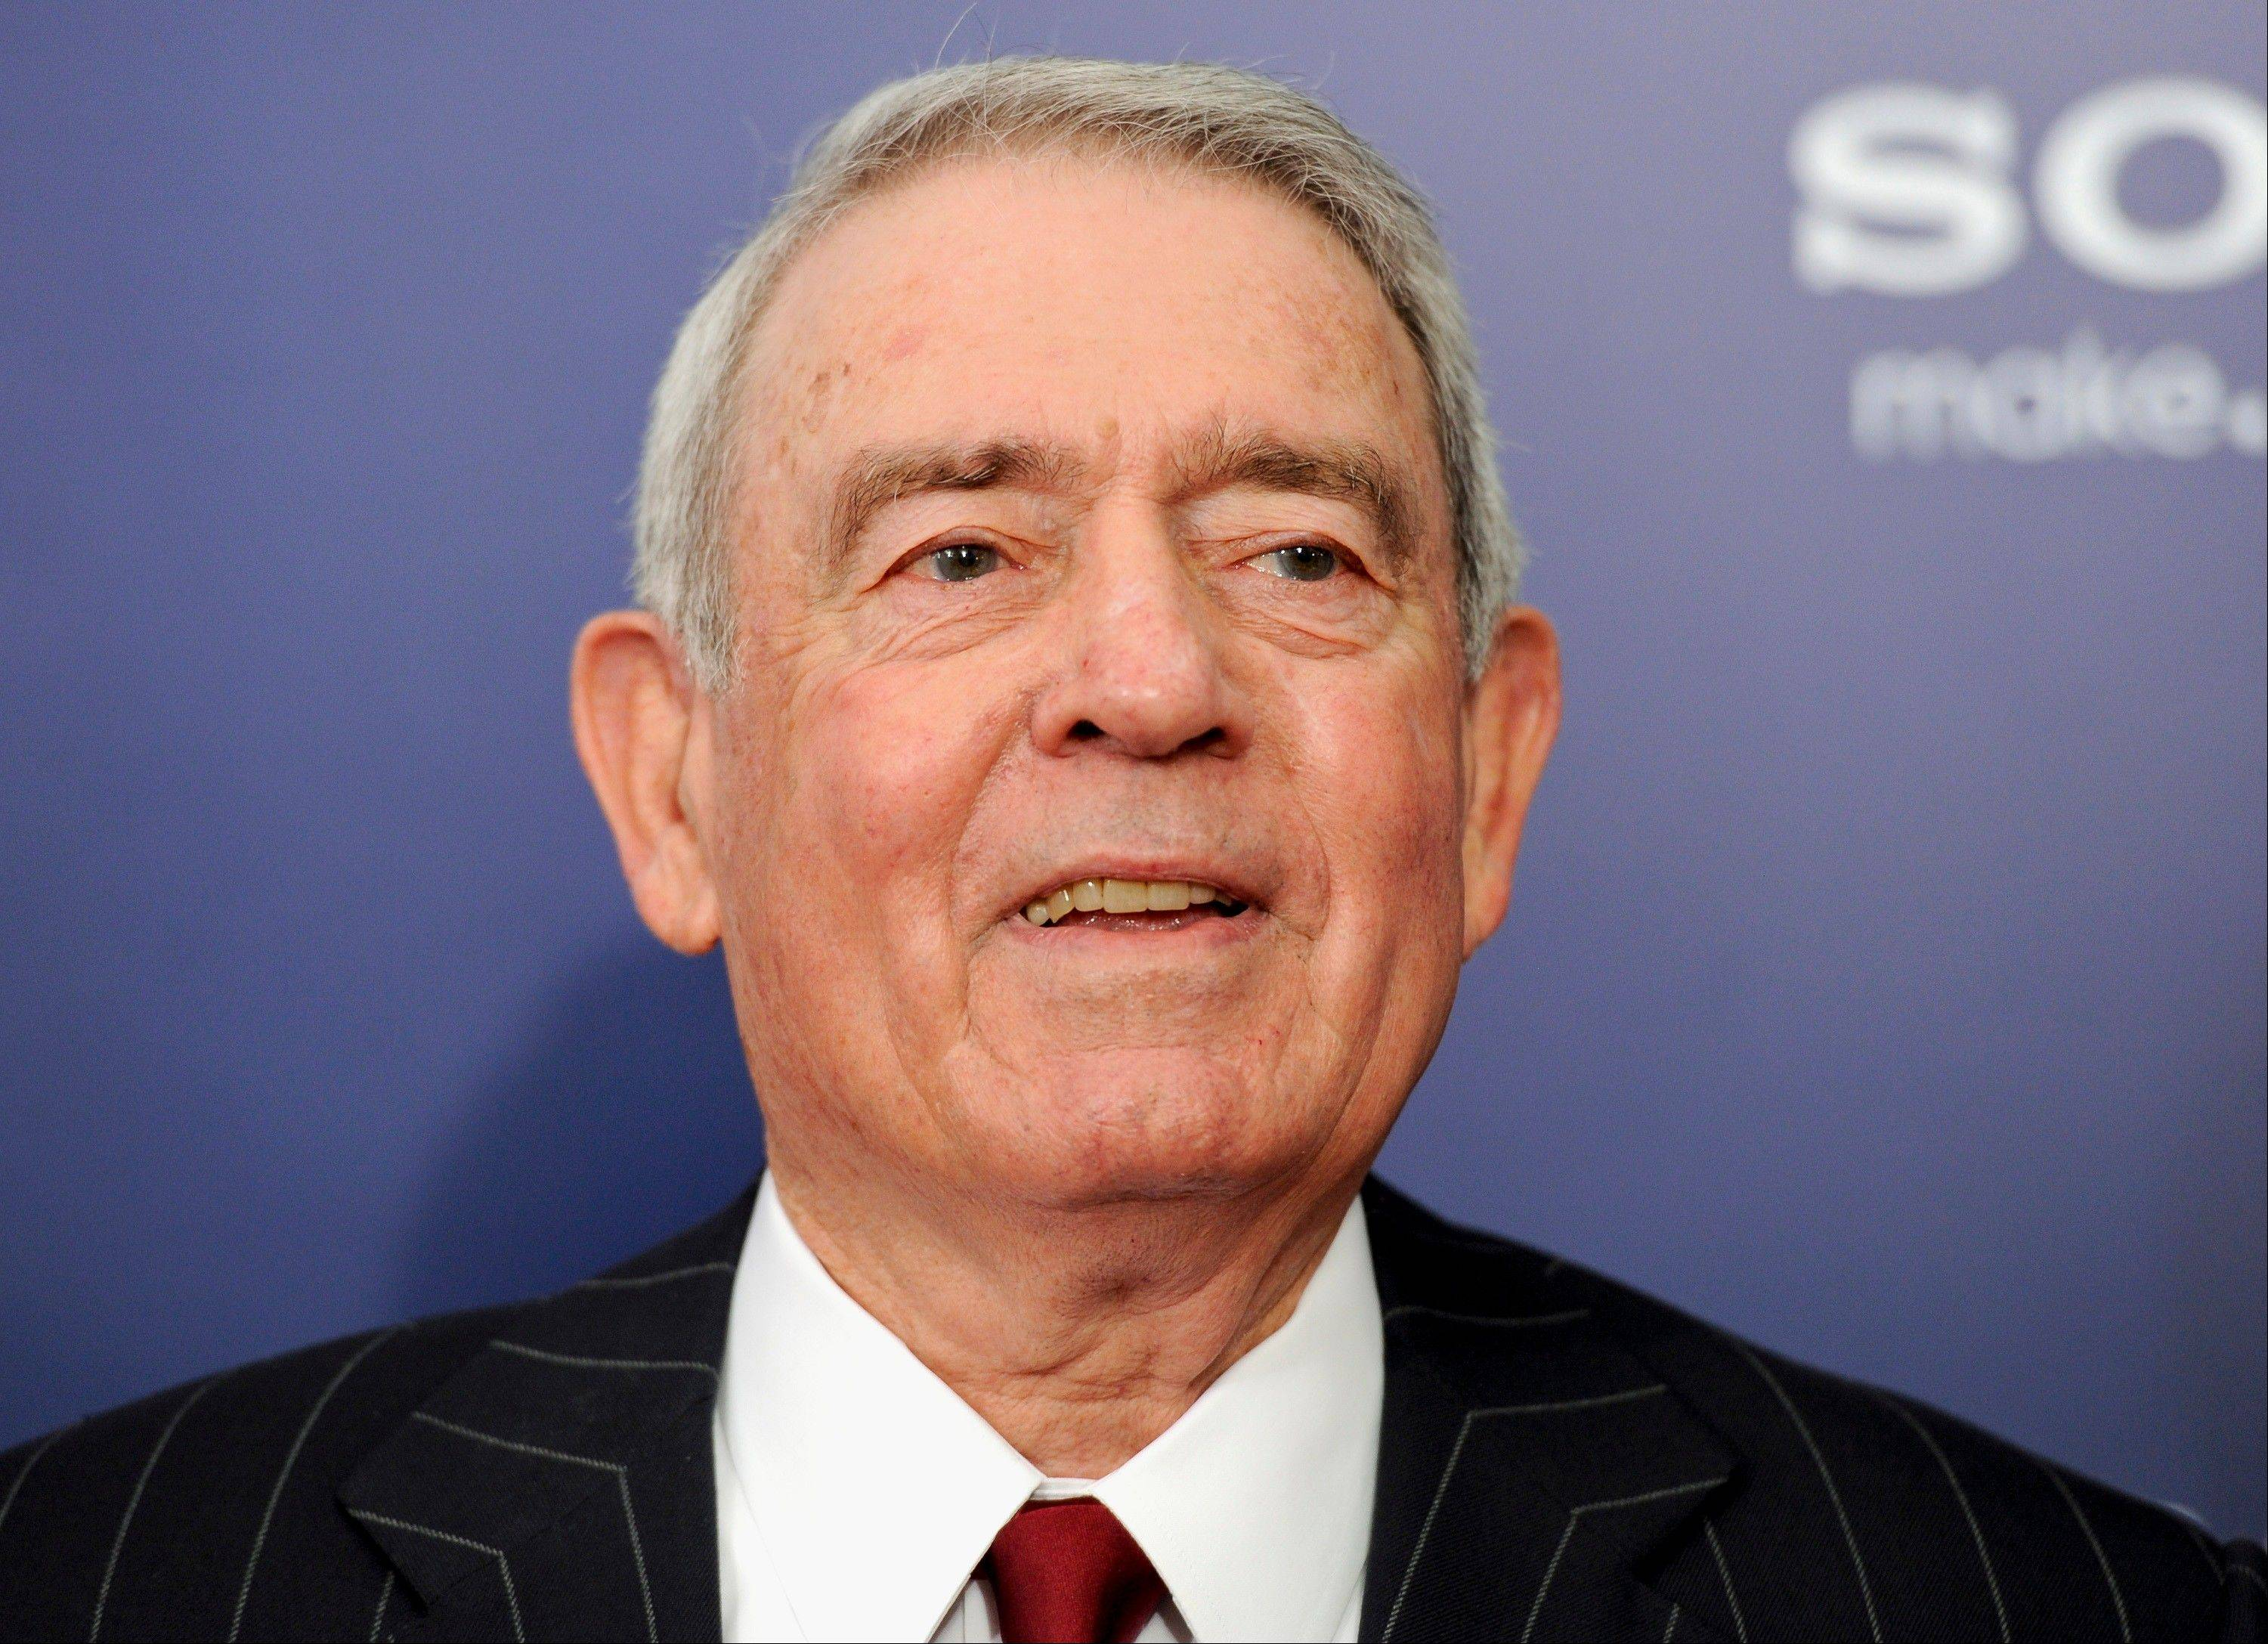 The 50th anniversary coverage of the Kennedy assassination on CBS News won�t include the recollections of the longtime anchor Dan Rather, further proof of the lingering bitterness following Rather�s messy exit and subsequent lawsuit against the network.